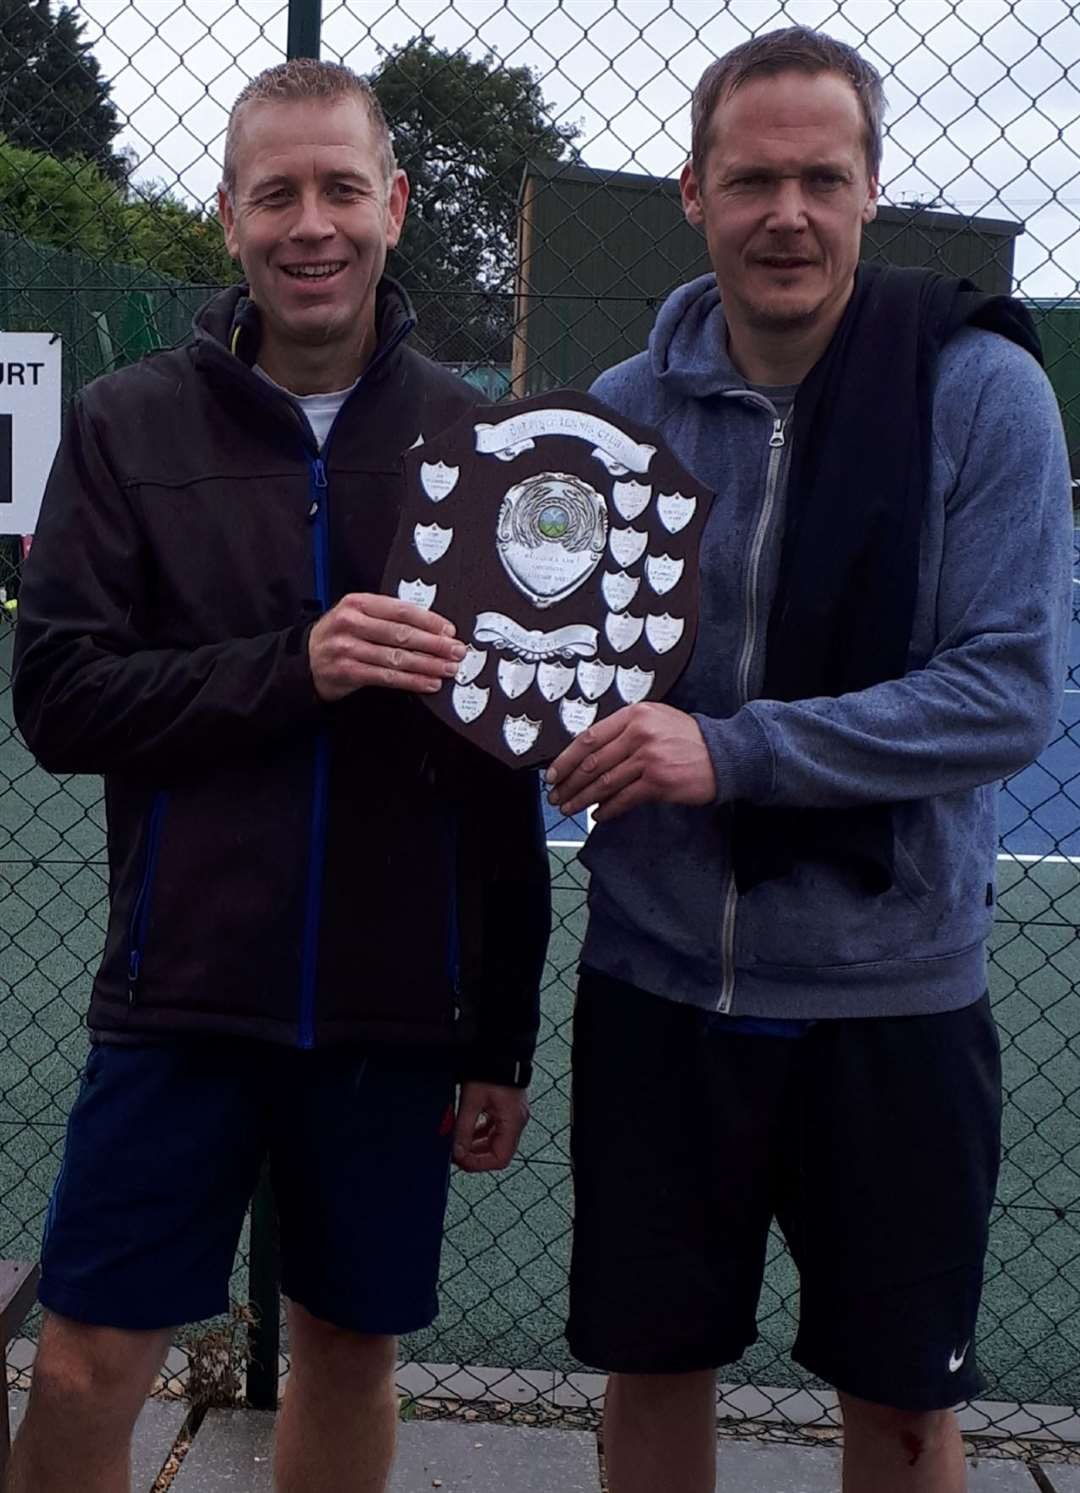 John Timson and James Westgate triumphed in the men's doubles.